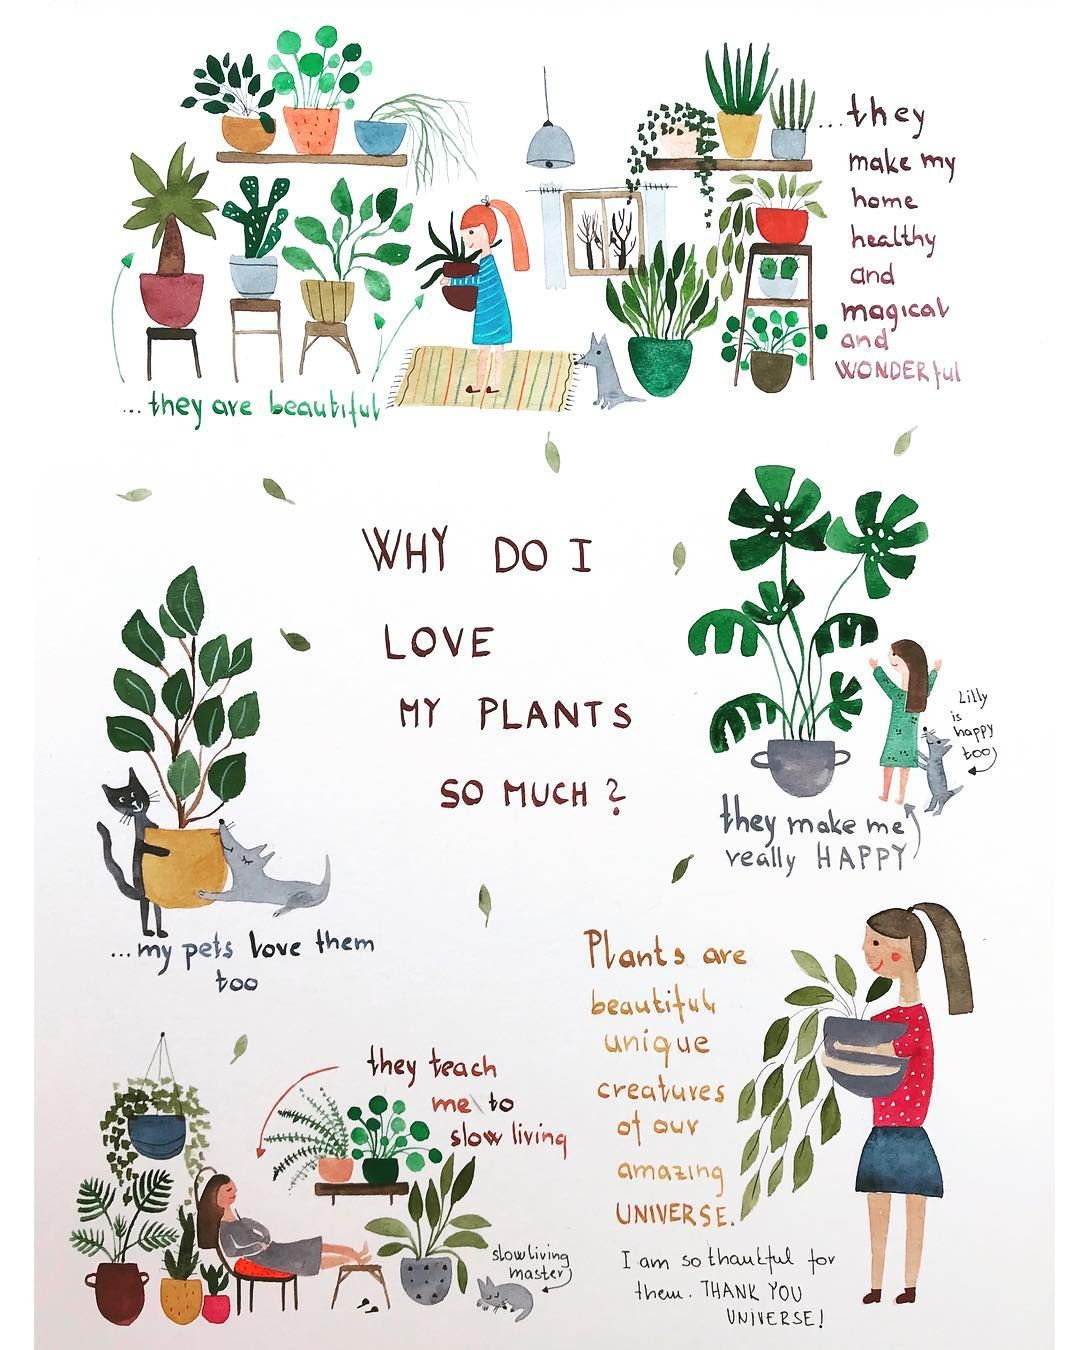 This Is Why I Love My Plants So Much Plantlover Plantlove Plantsmakepeoplehappy Plantsarefriends Plants Houseplantlove In 2020 Plant Lady Inside Plants Plants